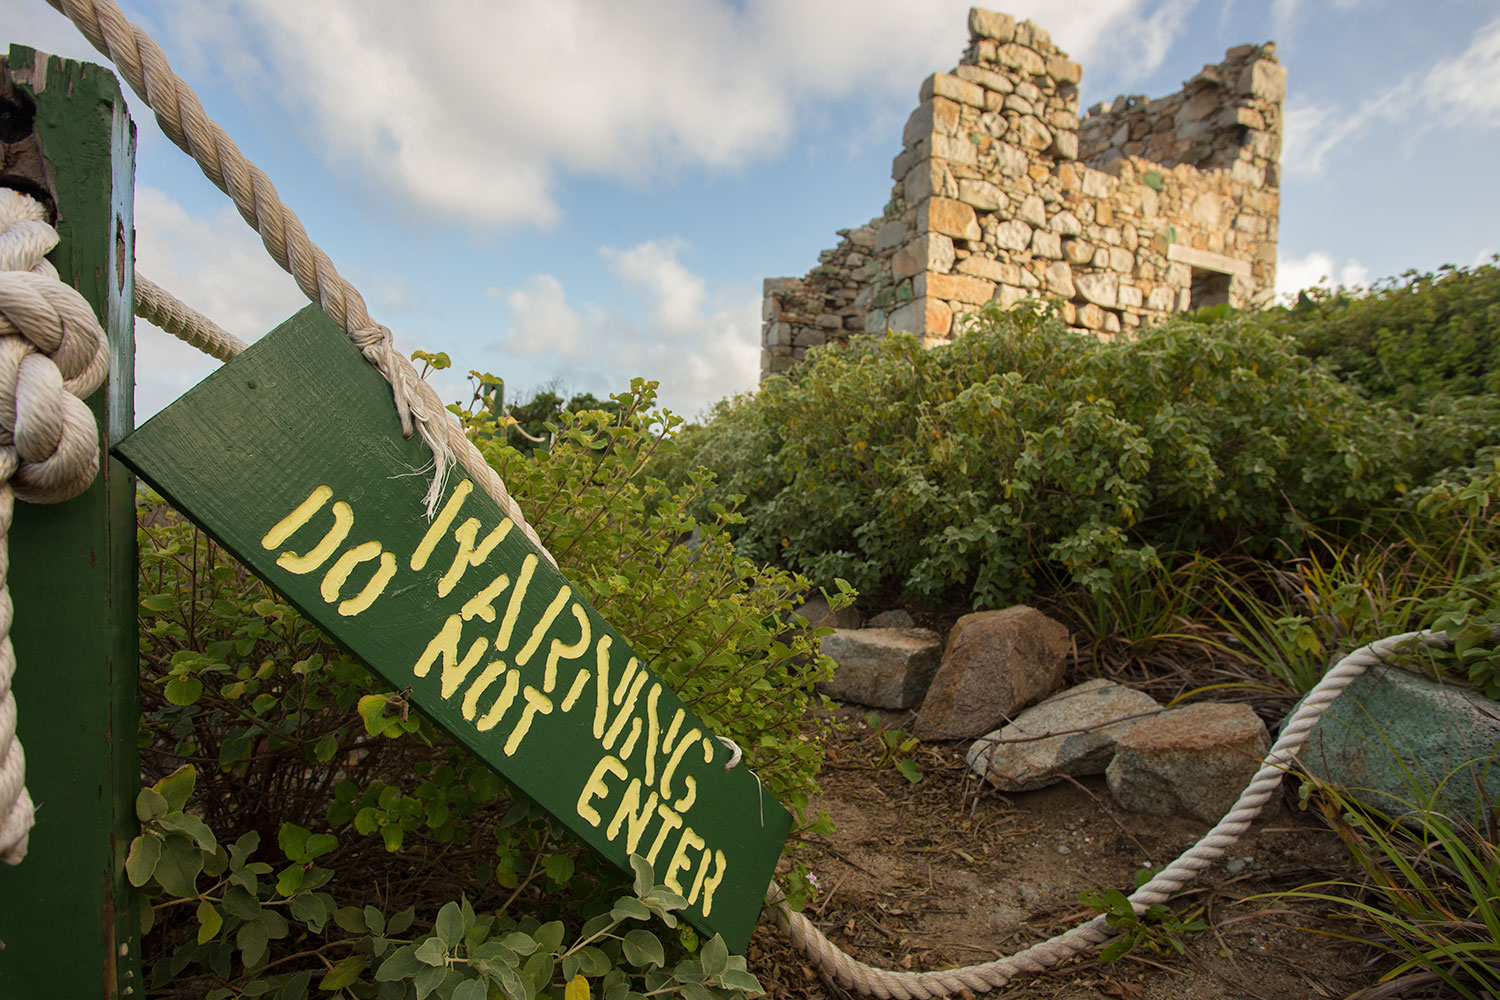 The ruins of this 19th century Copper Mine in Virgin Gorda are now abandoned.